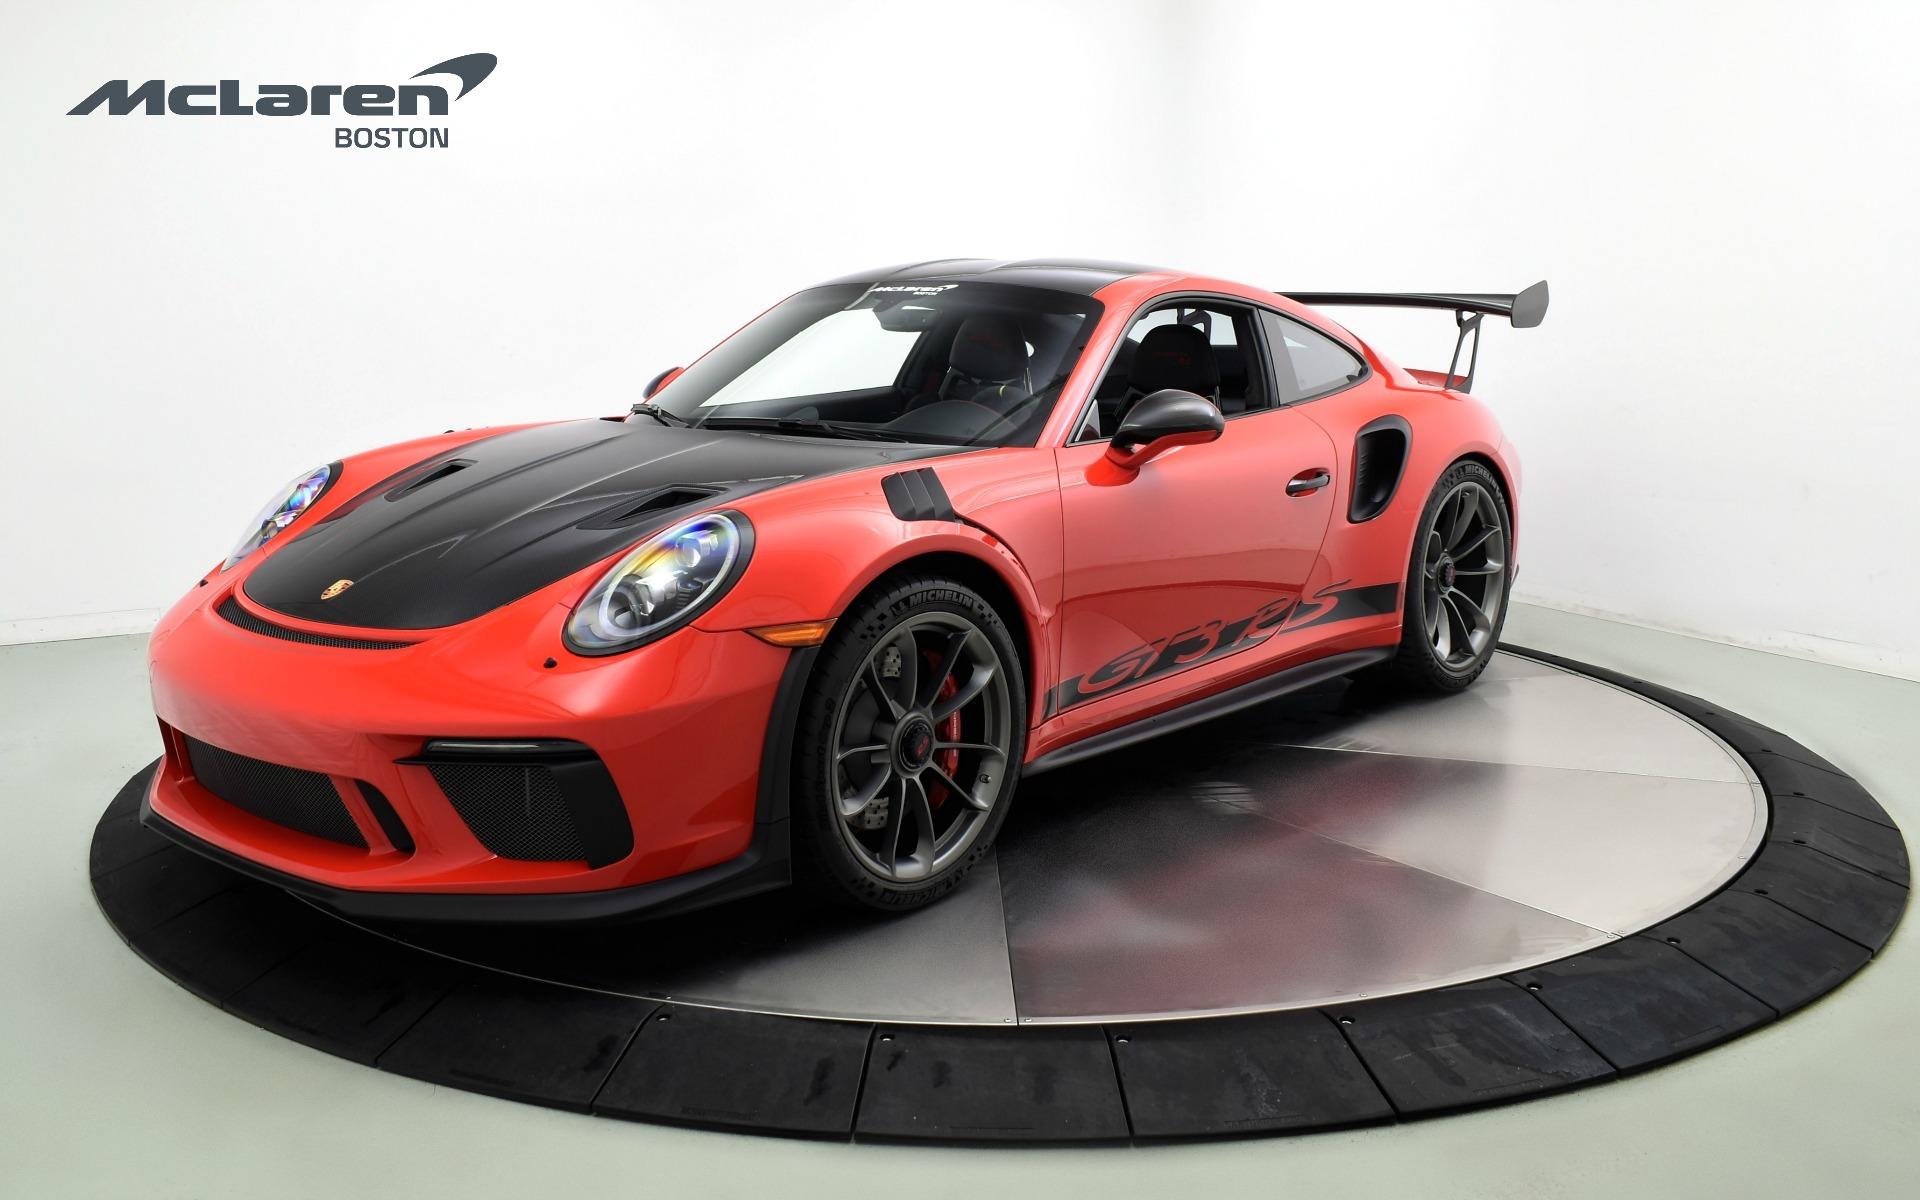 2019 Porsche 911 Gt3 Rs Gt3 Rs For Sale In Norwell Ma 164379 Mclaren Boston